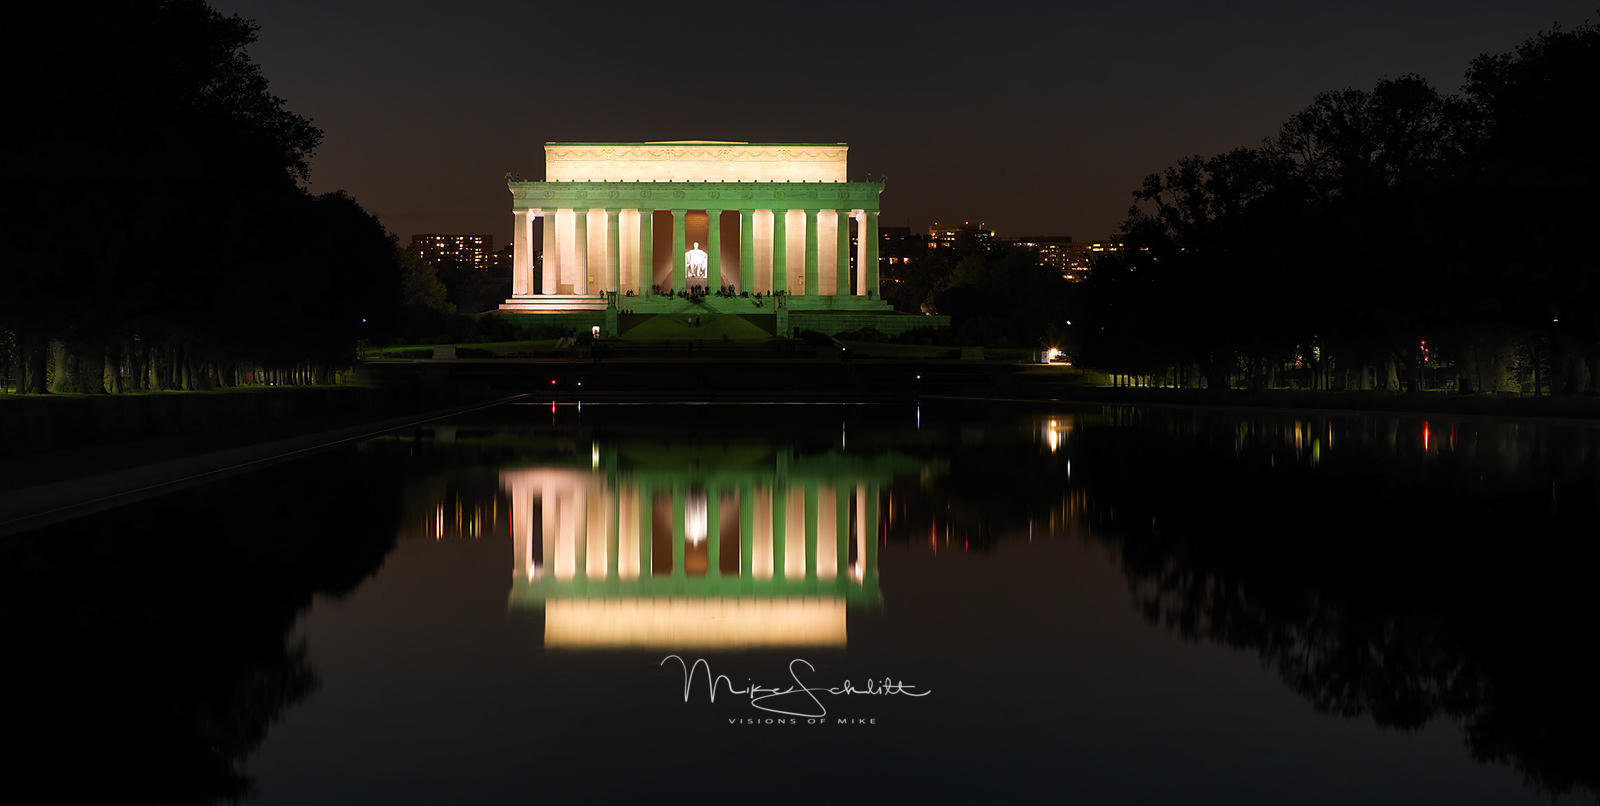 10-28-12_Washington_DC_2012_0035